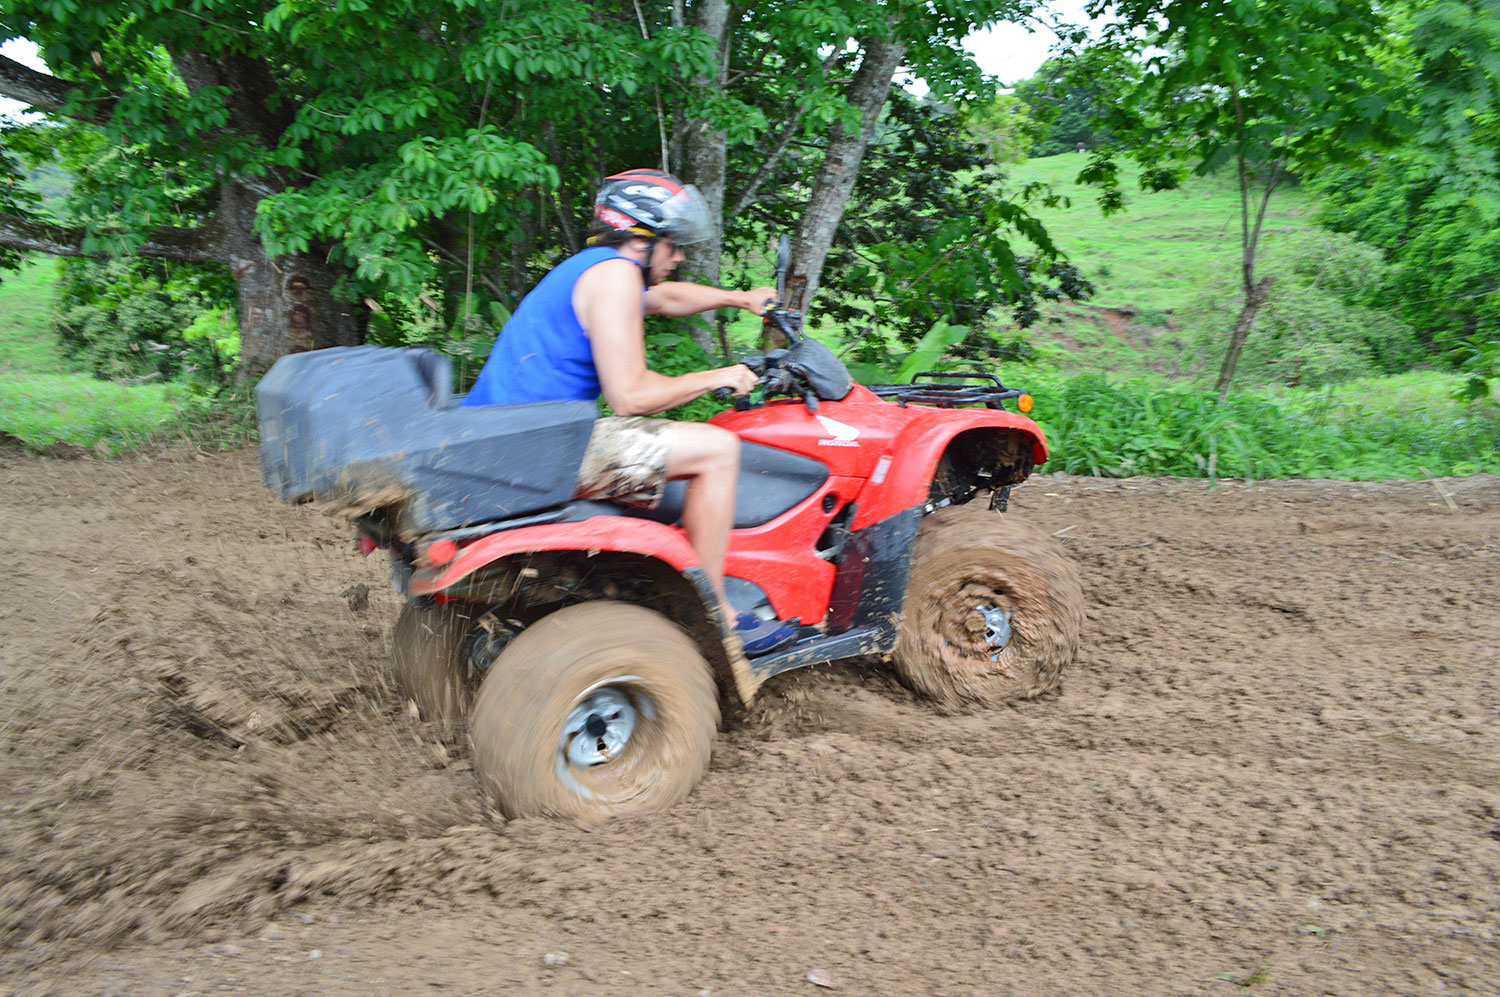 wheels-spinning-in-the-mud.jpg